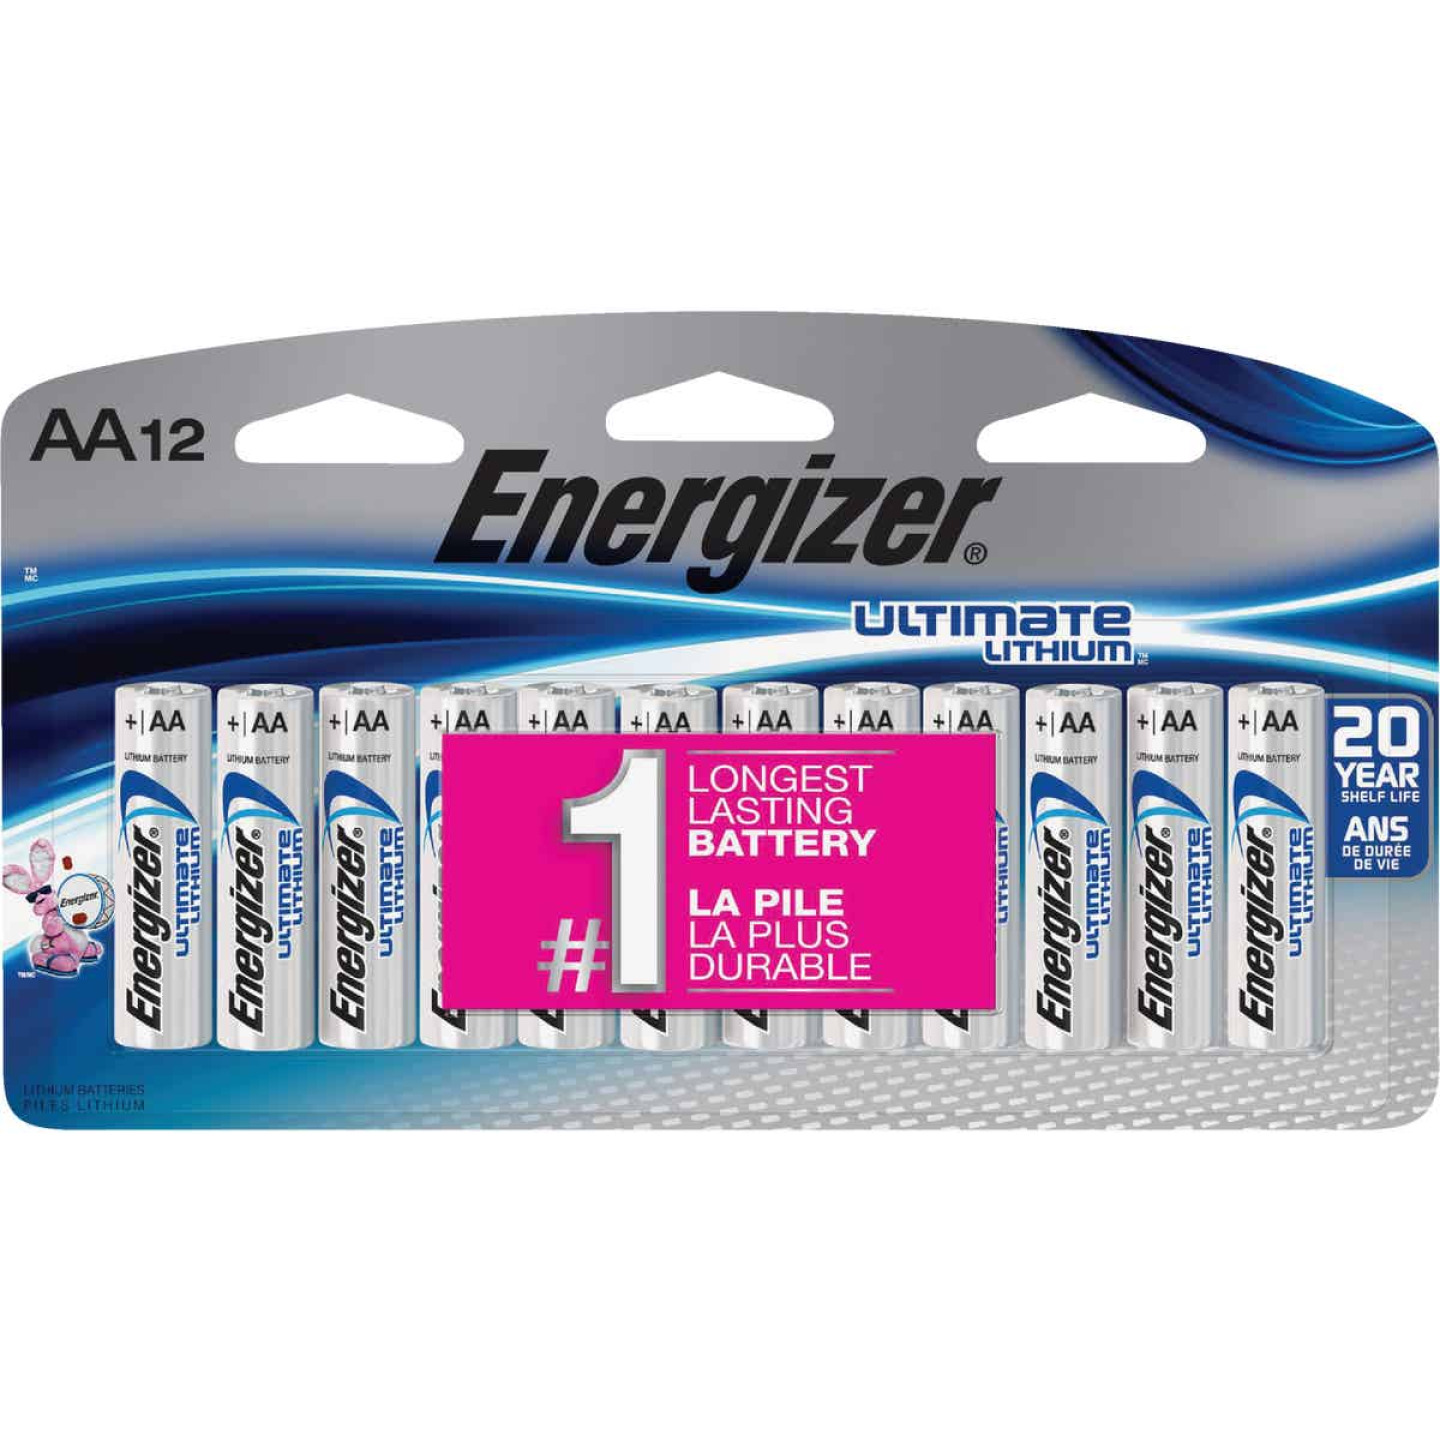 Energizer AA Ultimate Lithium Battery (12-Pack) Image 1